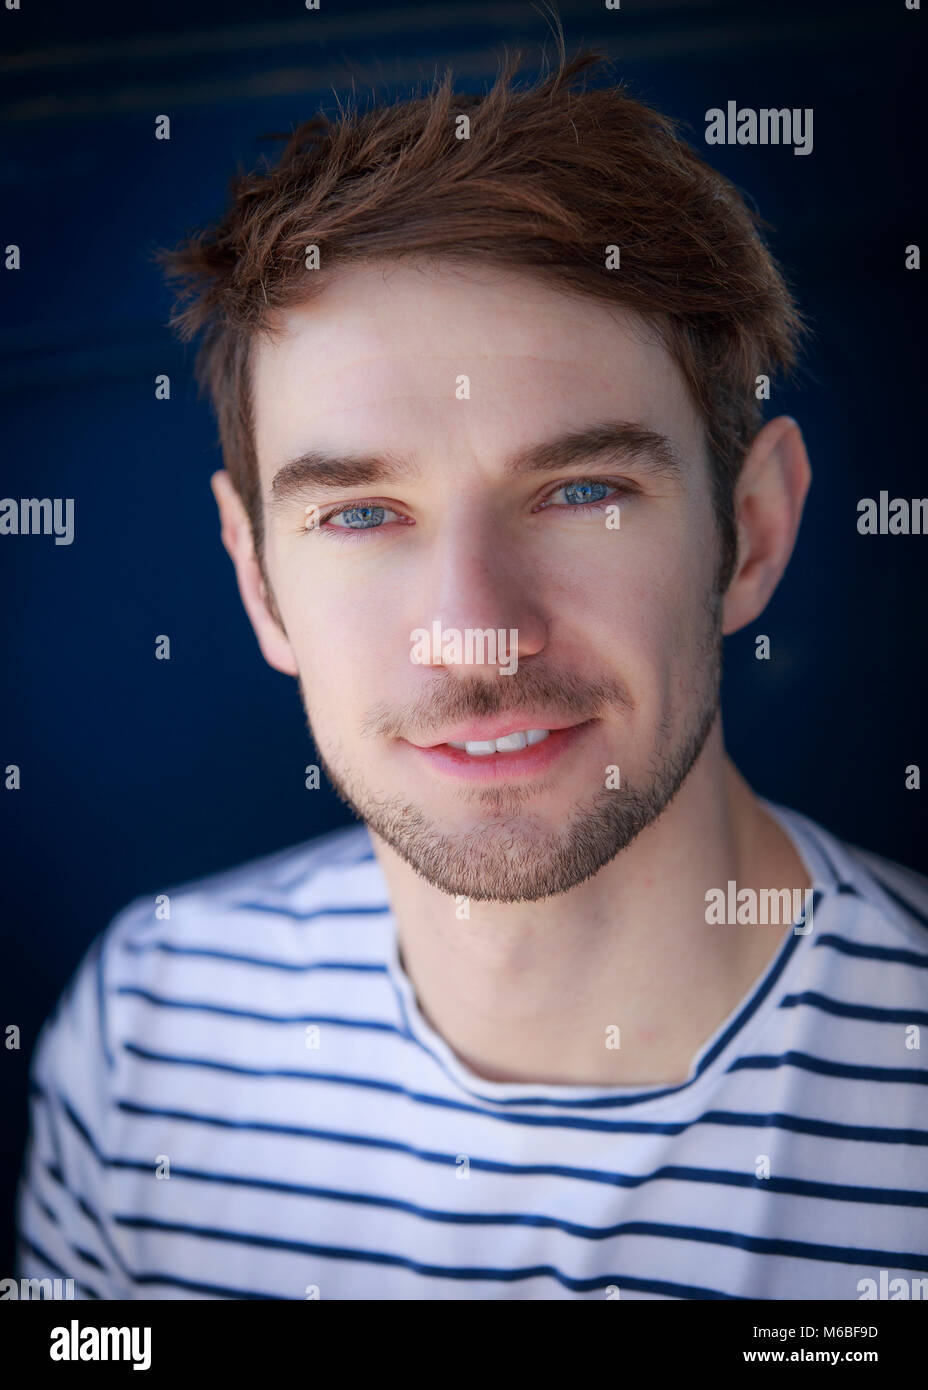 John Oakes, Actor, Headshot © Clarissa Debenham / Alamy - Stock Image